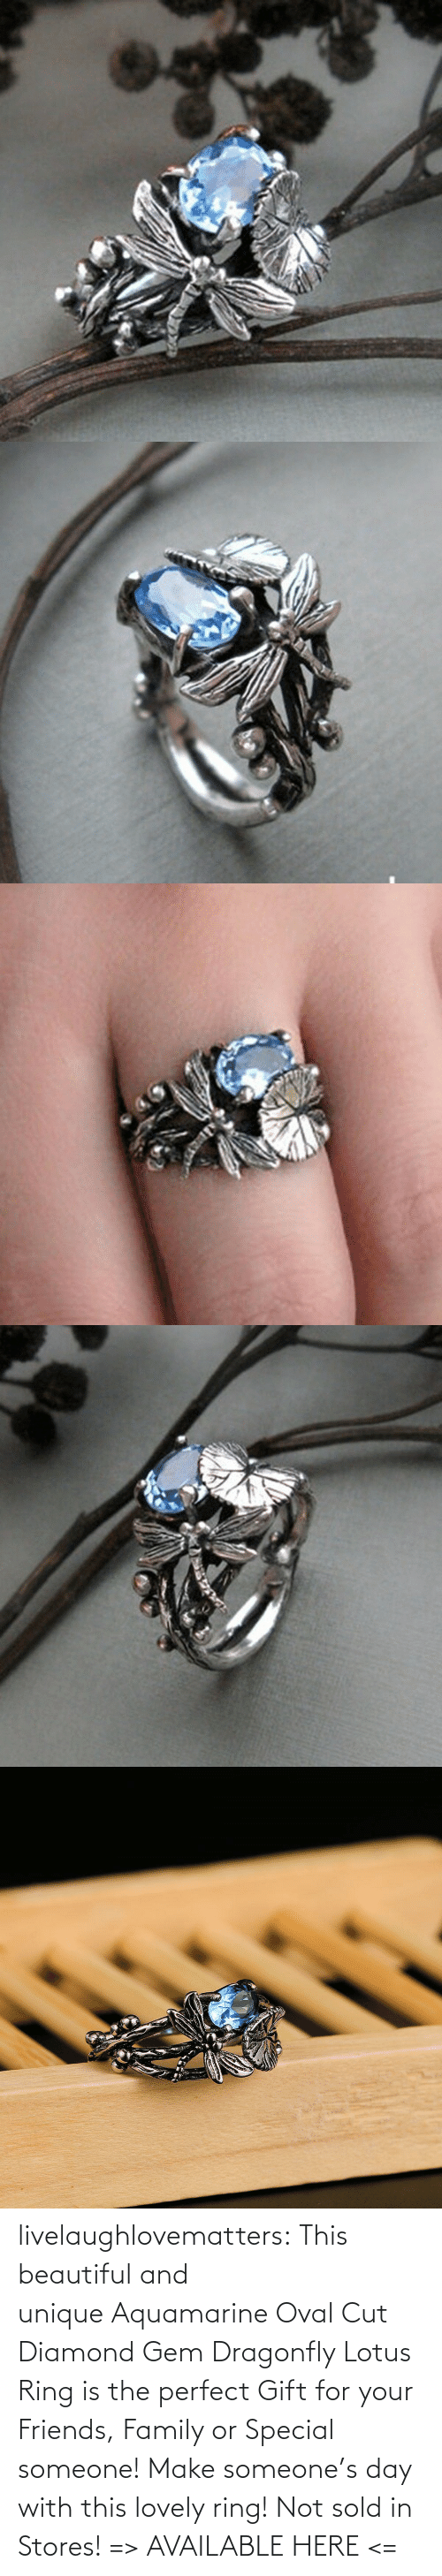 ring: livelaughlovematters: This beautiful and uniqueAquamarine Oval Cut Diamond Gem Dragonfly Lotus Ring is the perfect Gift for your Friends, Family or Special someone! Make someone's day with this lovely ring! Not sold in Stores! => AVAILABLE HERE <=